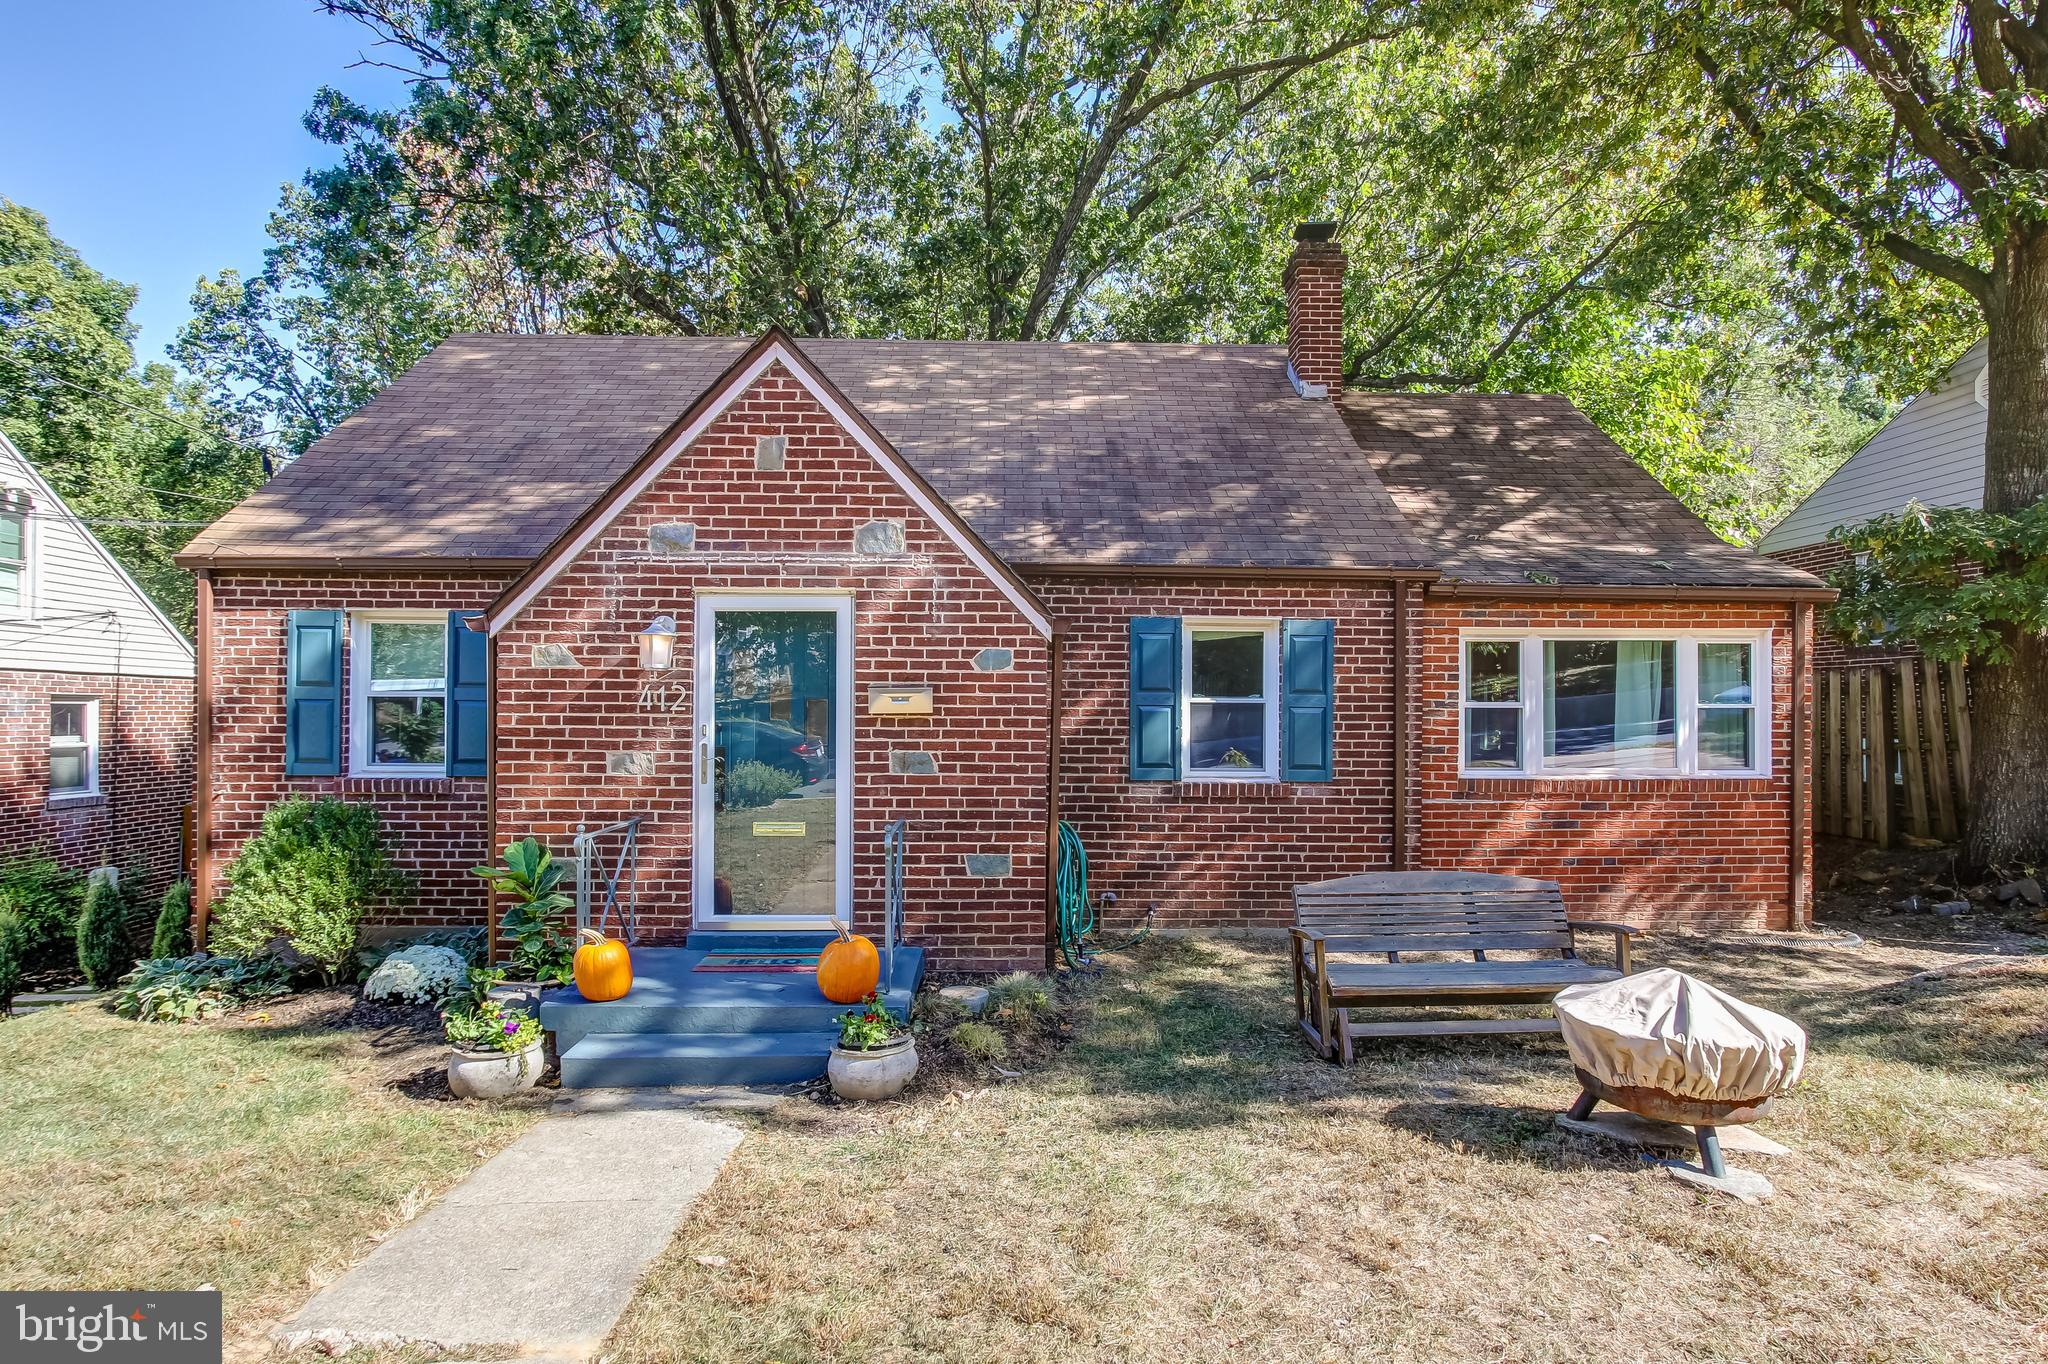 412 LINCOLN AVENUE, TAKOMA PARK, MD 20912